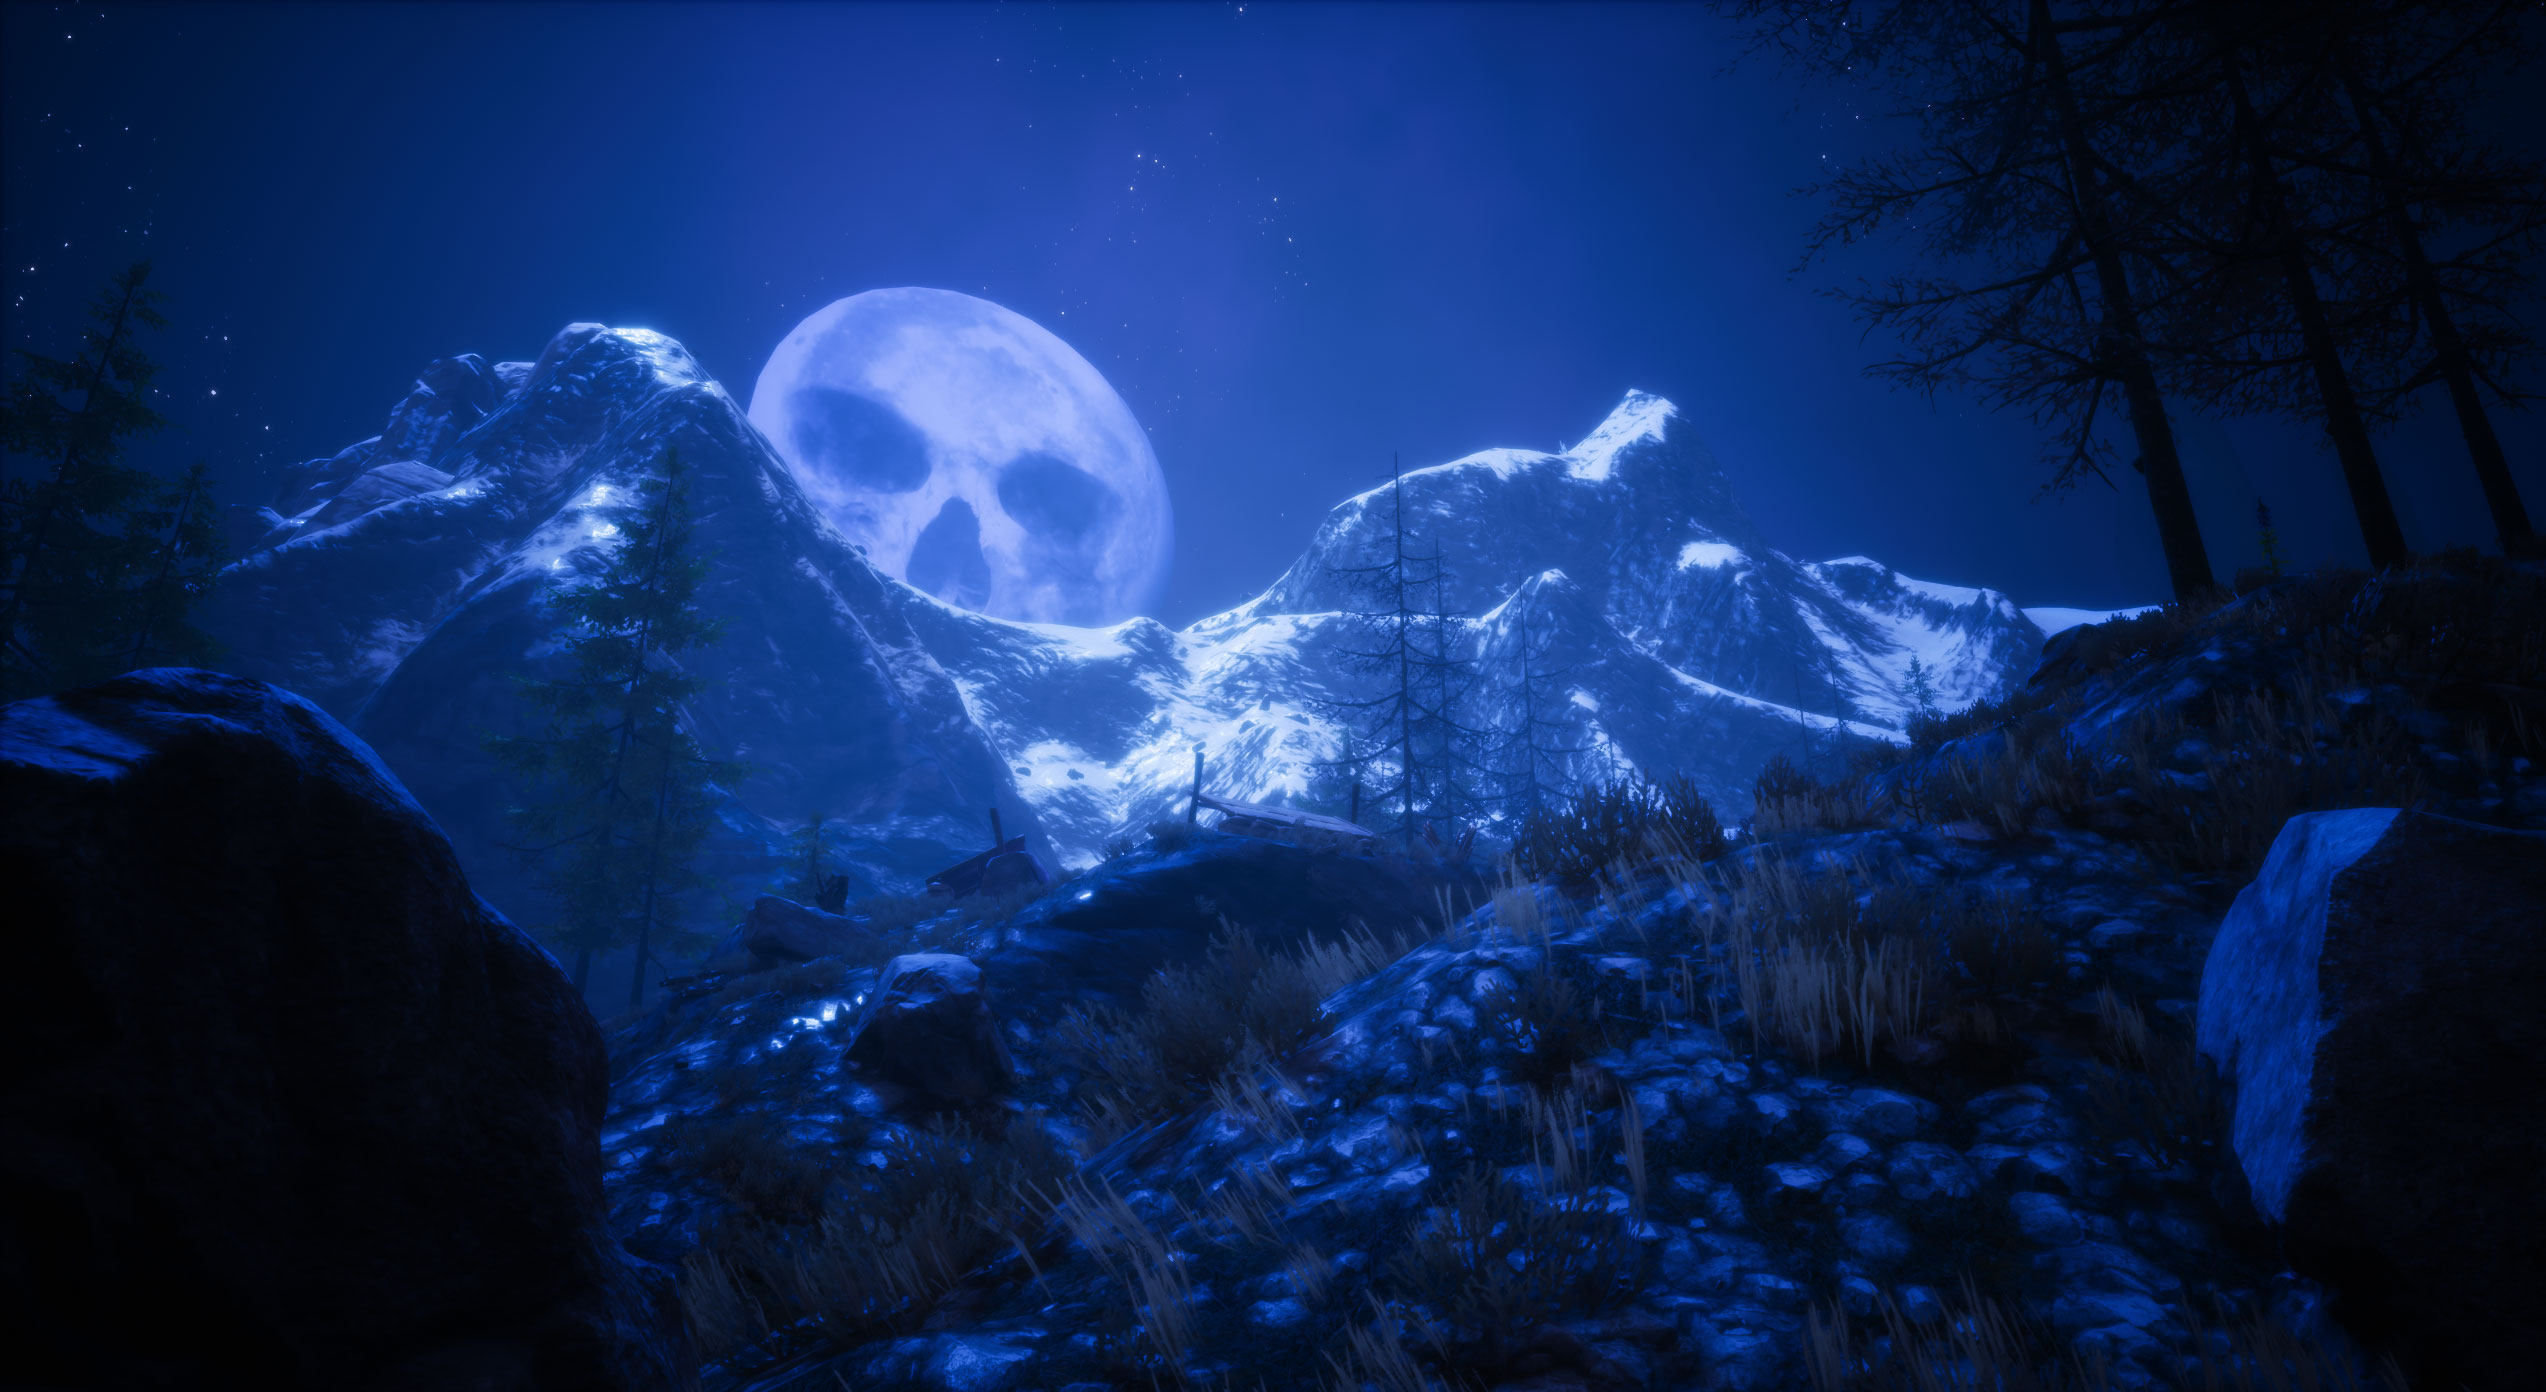 Conan Exiles Update Halloween 2020 Weekly Community Newsletter: It's Gonna Get Pretty Spooky   Conan